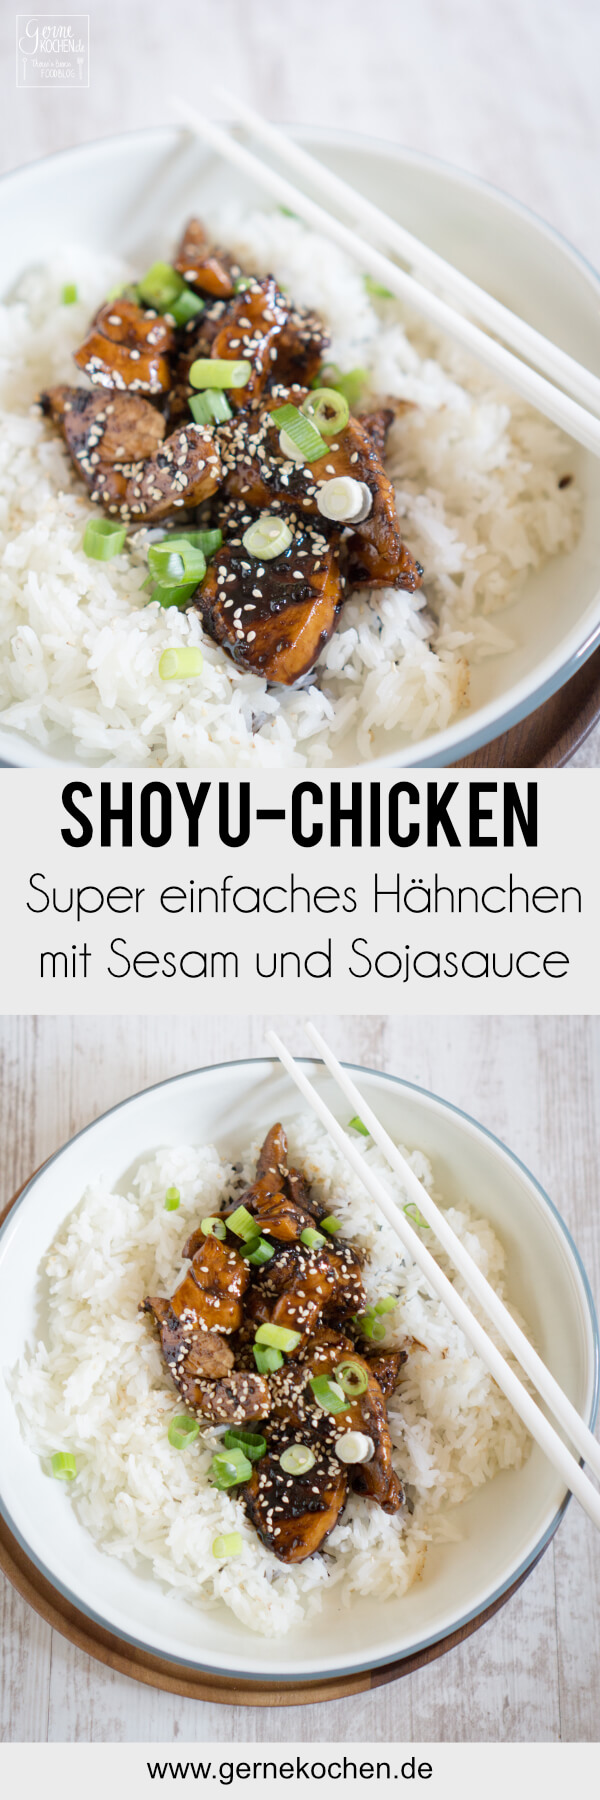 Shoyu-Chicken